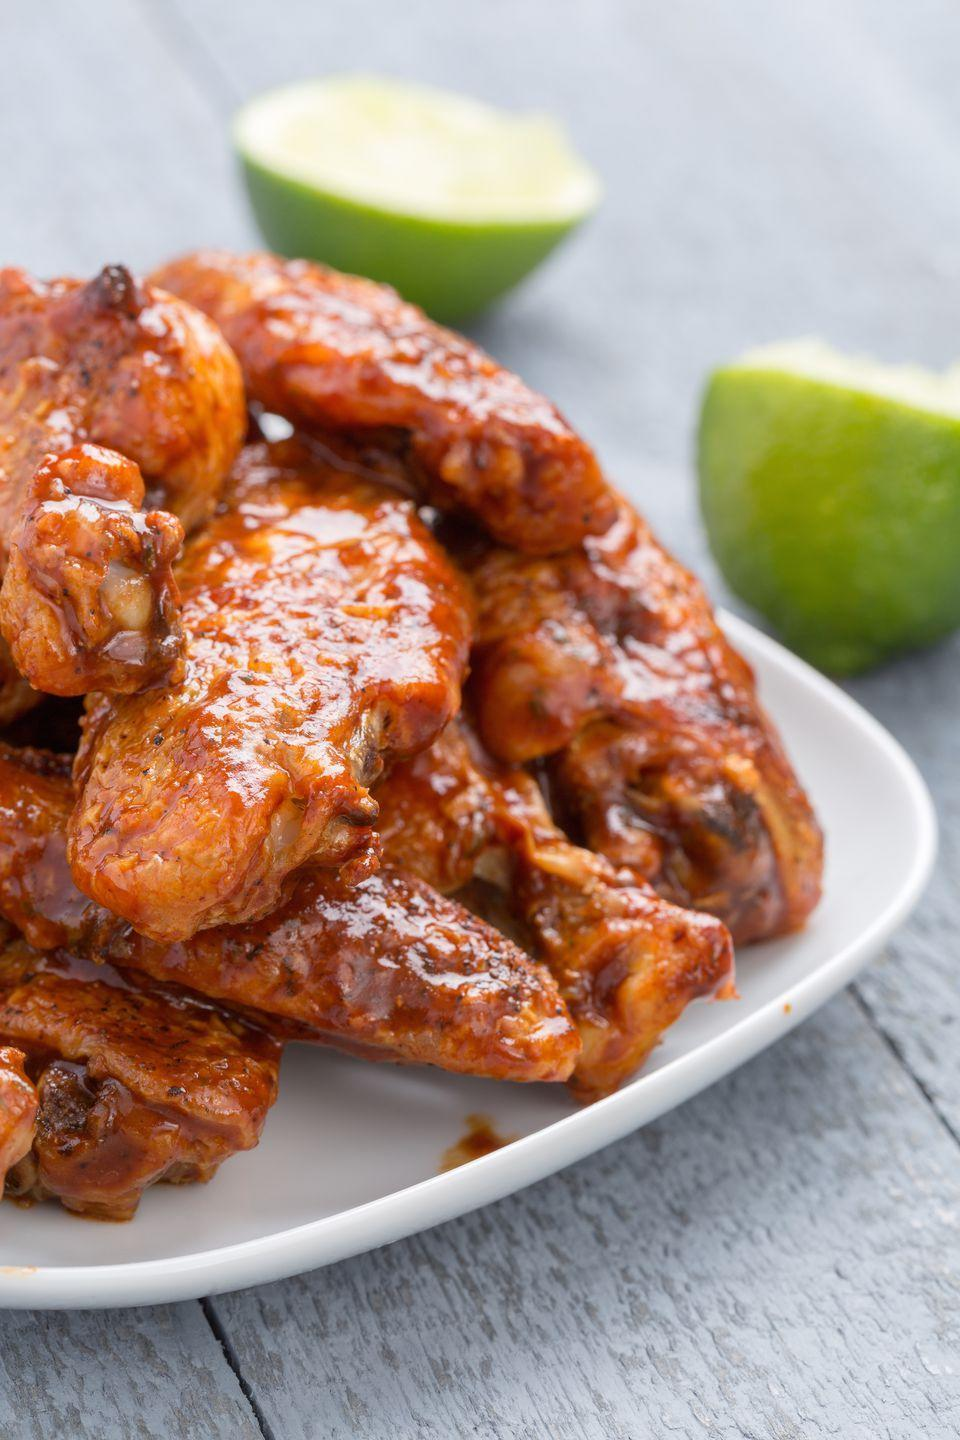 <p>Don't underestimate the powerful heat of chipotle peppers: If you're the type who thinks Sriracha is spicy enough, these wings are not for you. Add extra lime to tame the flame.</p><p>Get the recipe from <span>Delish</span>.</p>